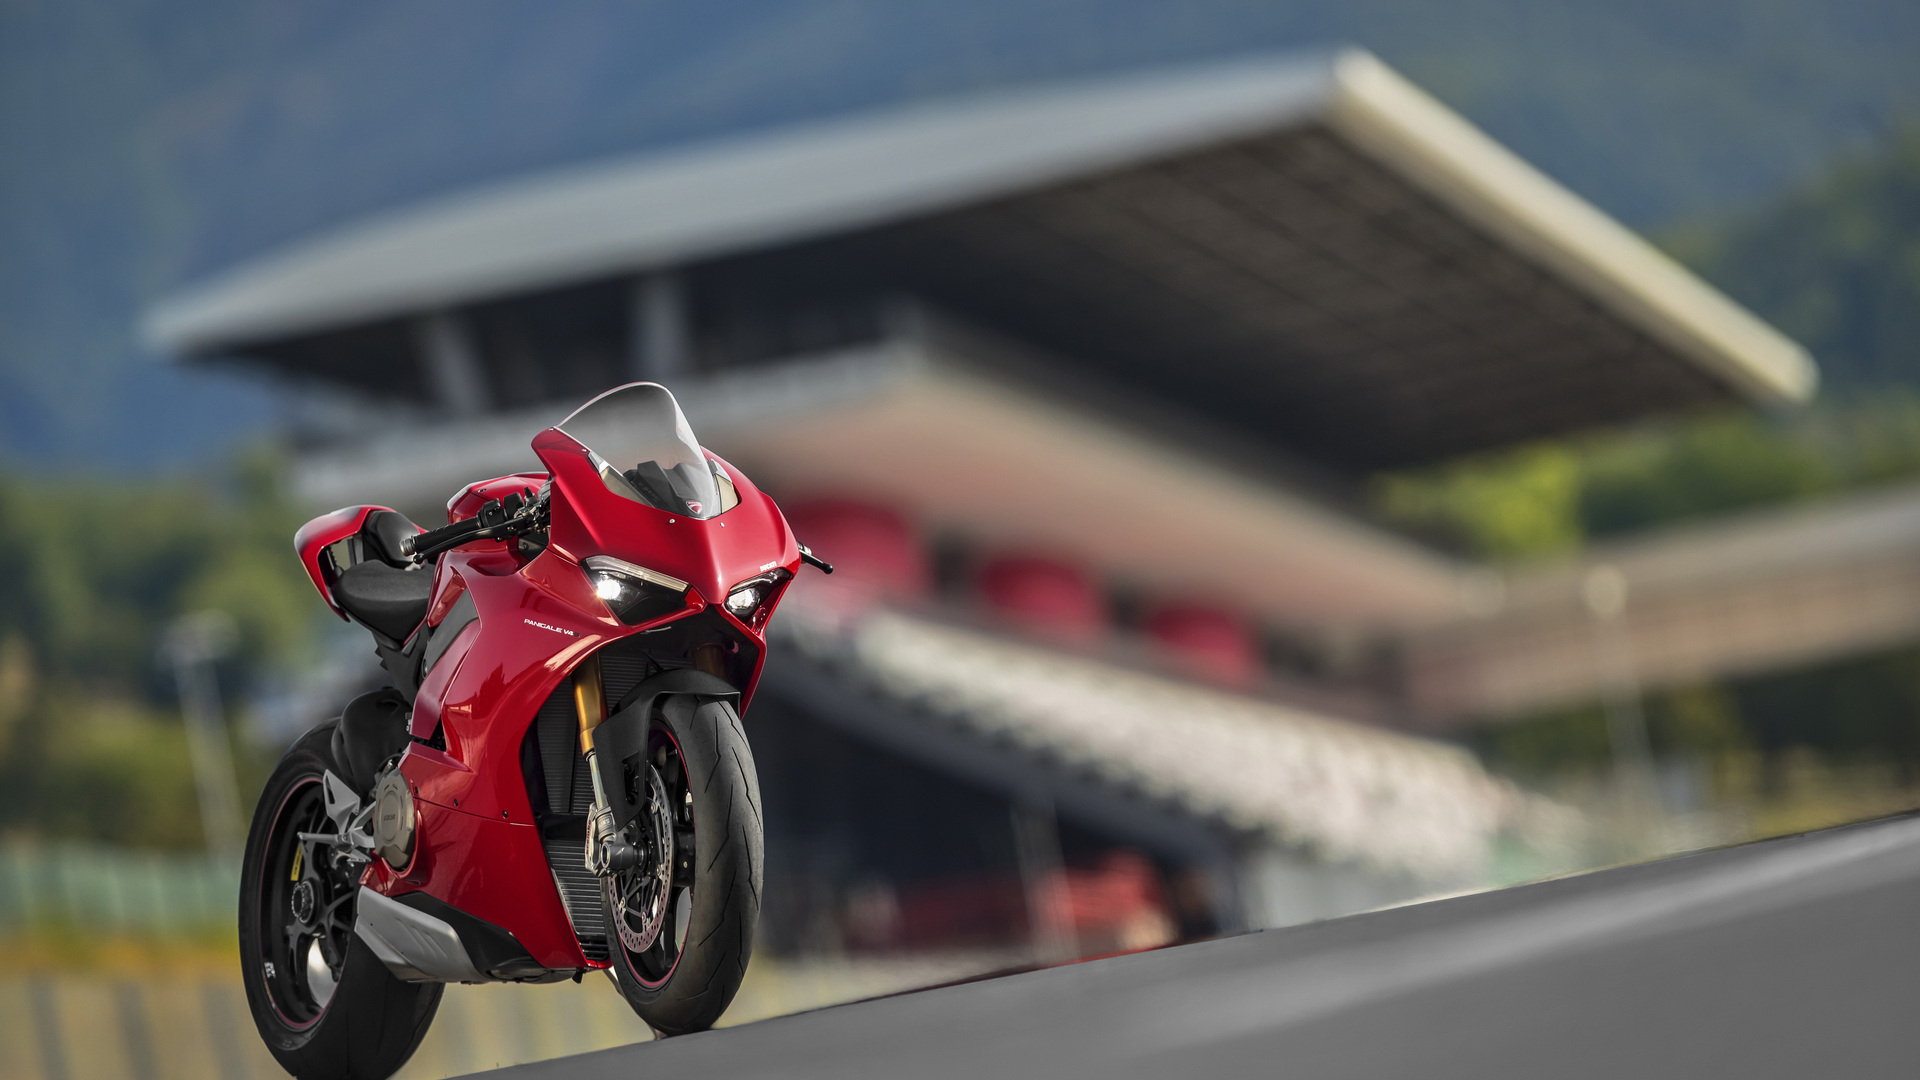 Ducati Panigale V Hd Wallpapers